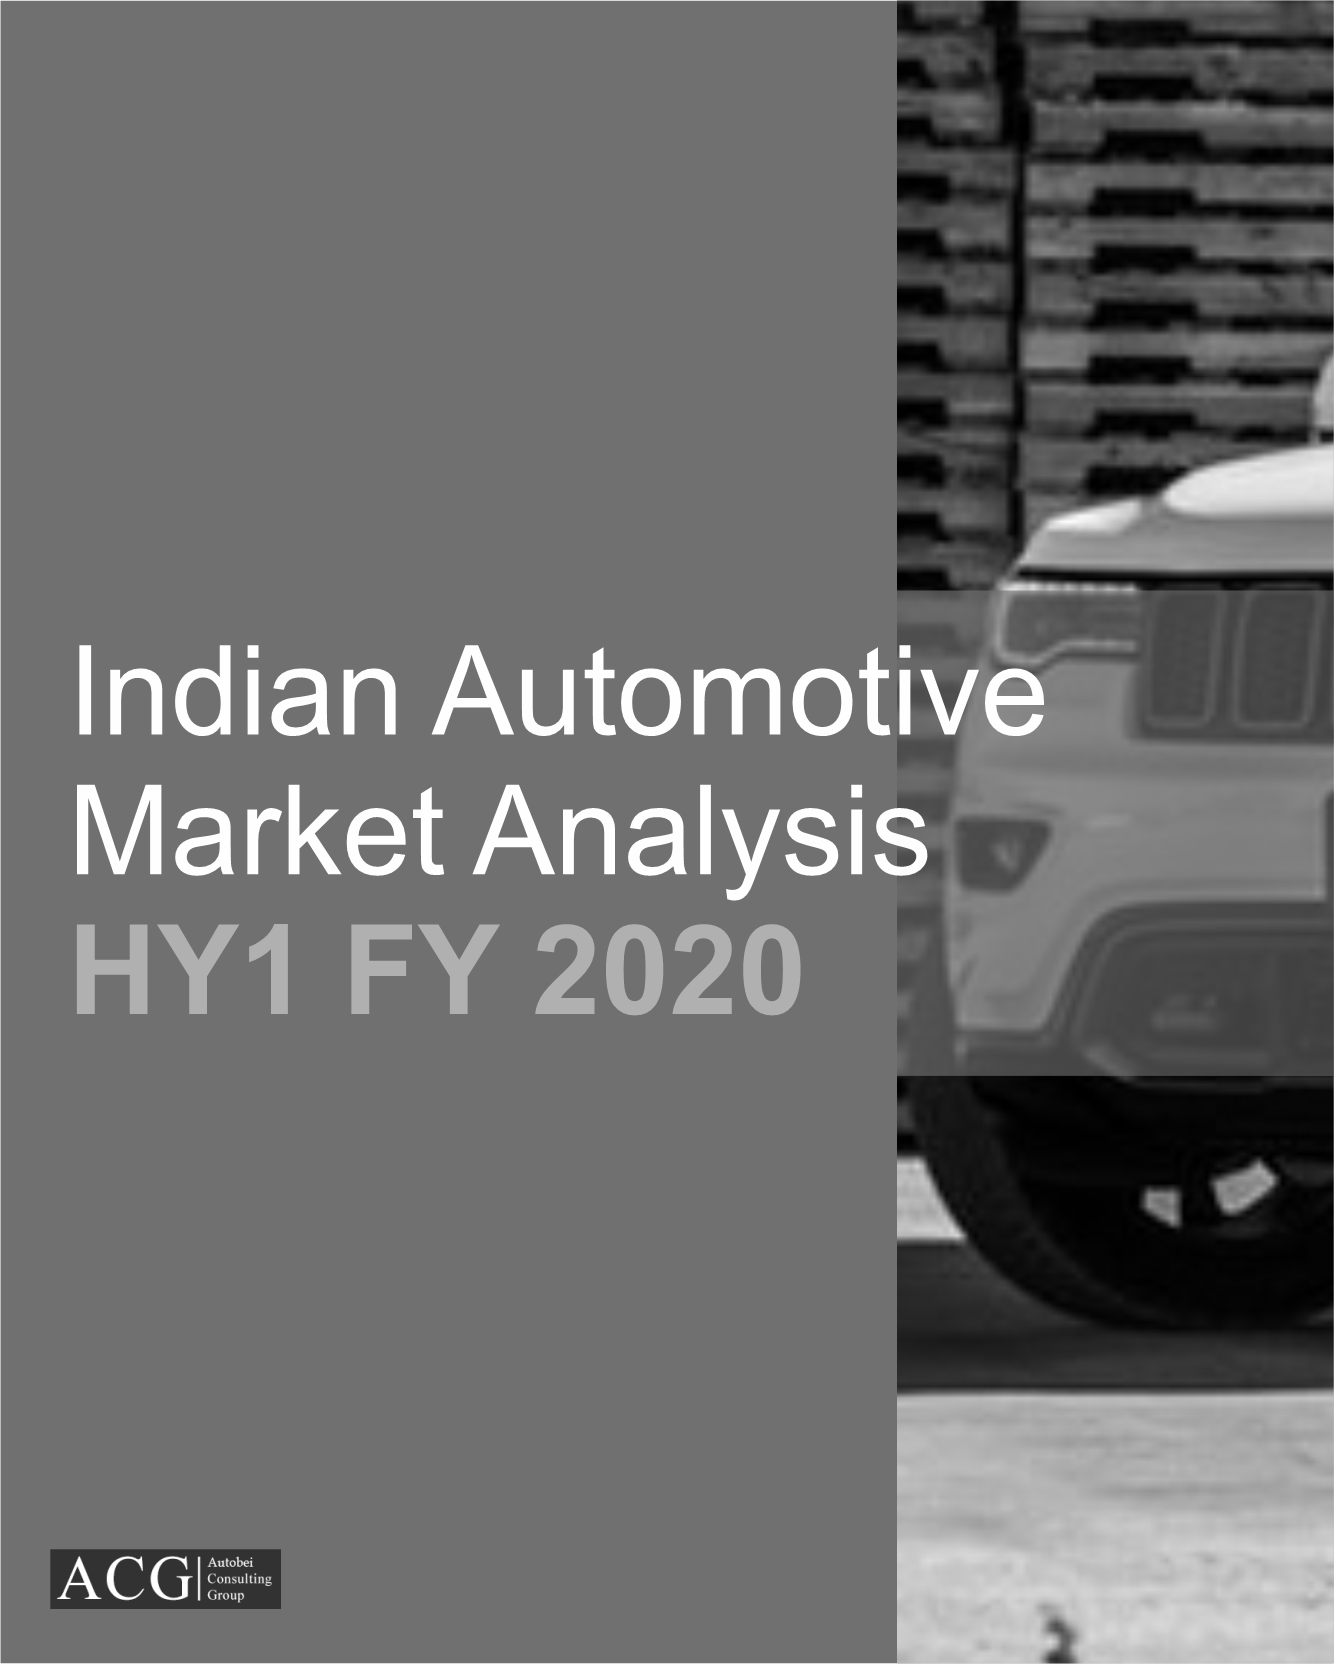 Indian Automotive Industry Analysis HY1 FY 2020